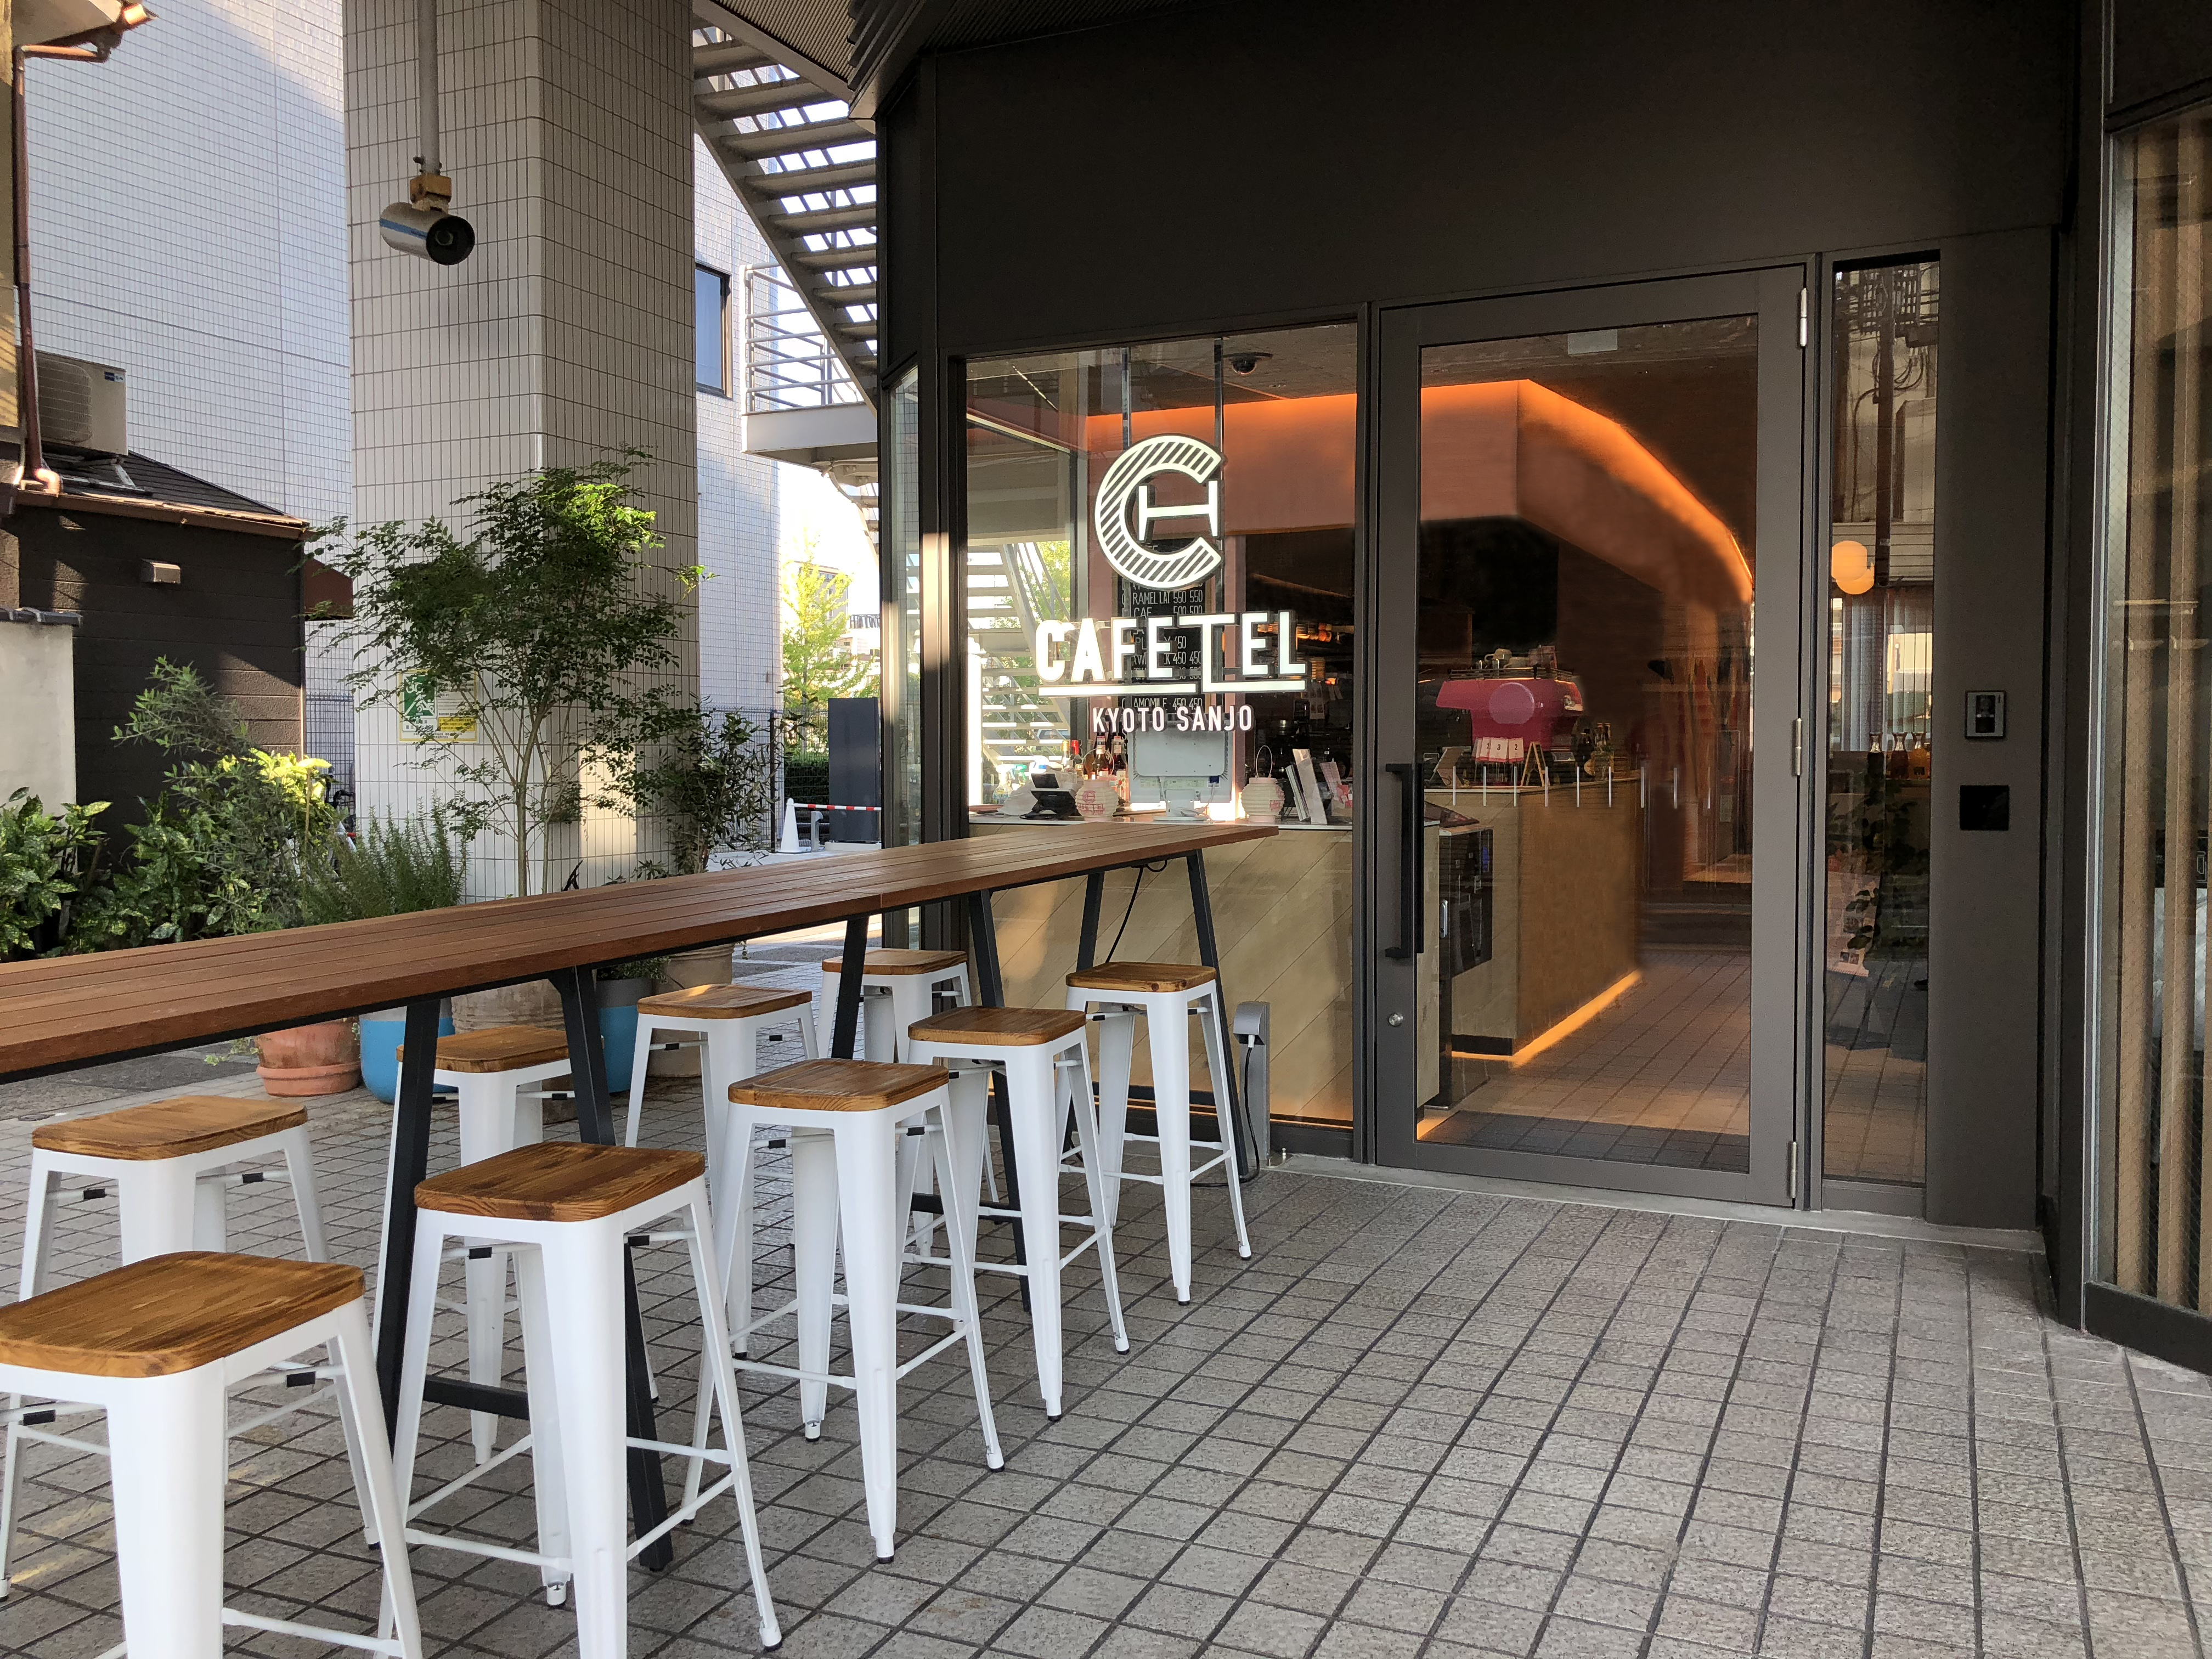 CAFETEL 京都三条 for Ladies(カフェテル)